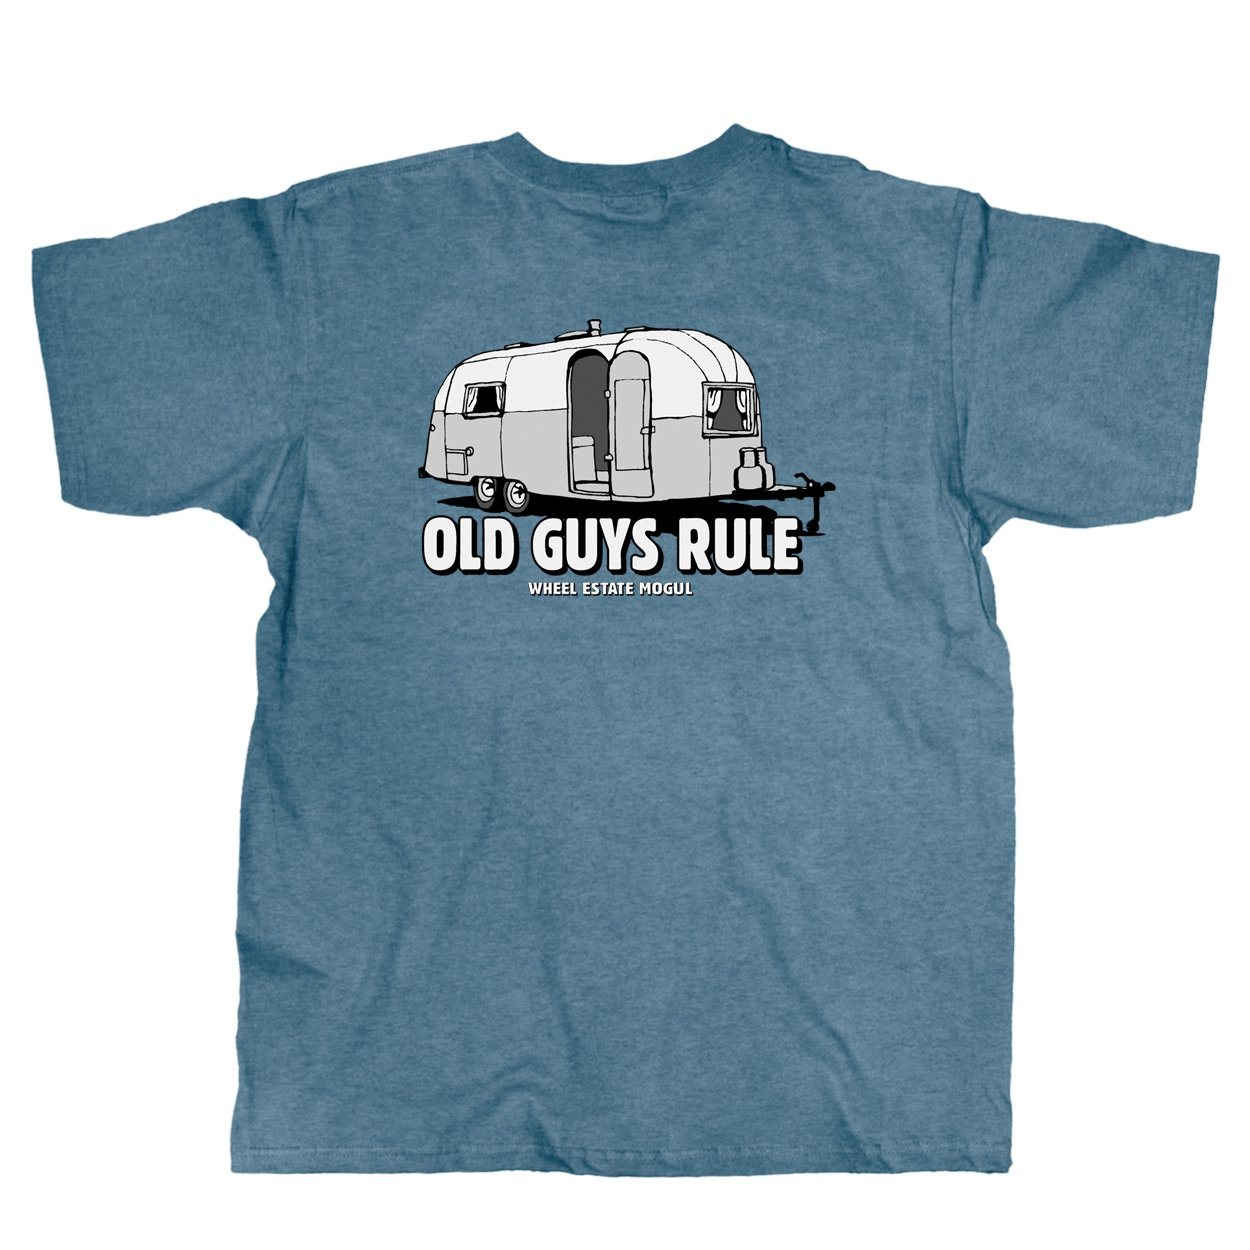 Old Guys Rule - Wheel Estate - Heather Indigo T-Shirt - Main View